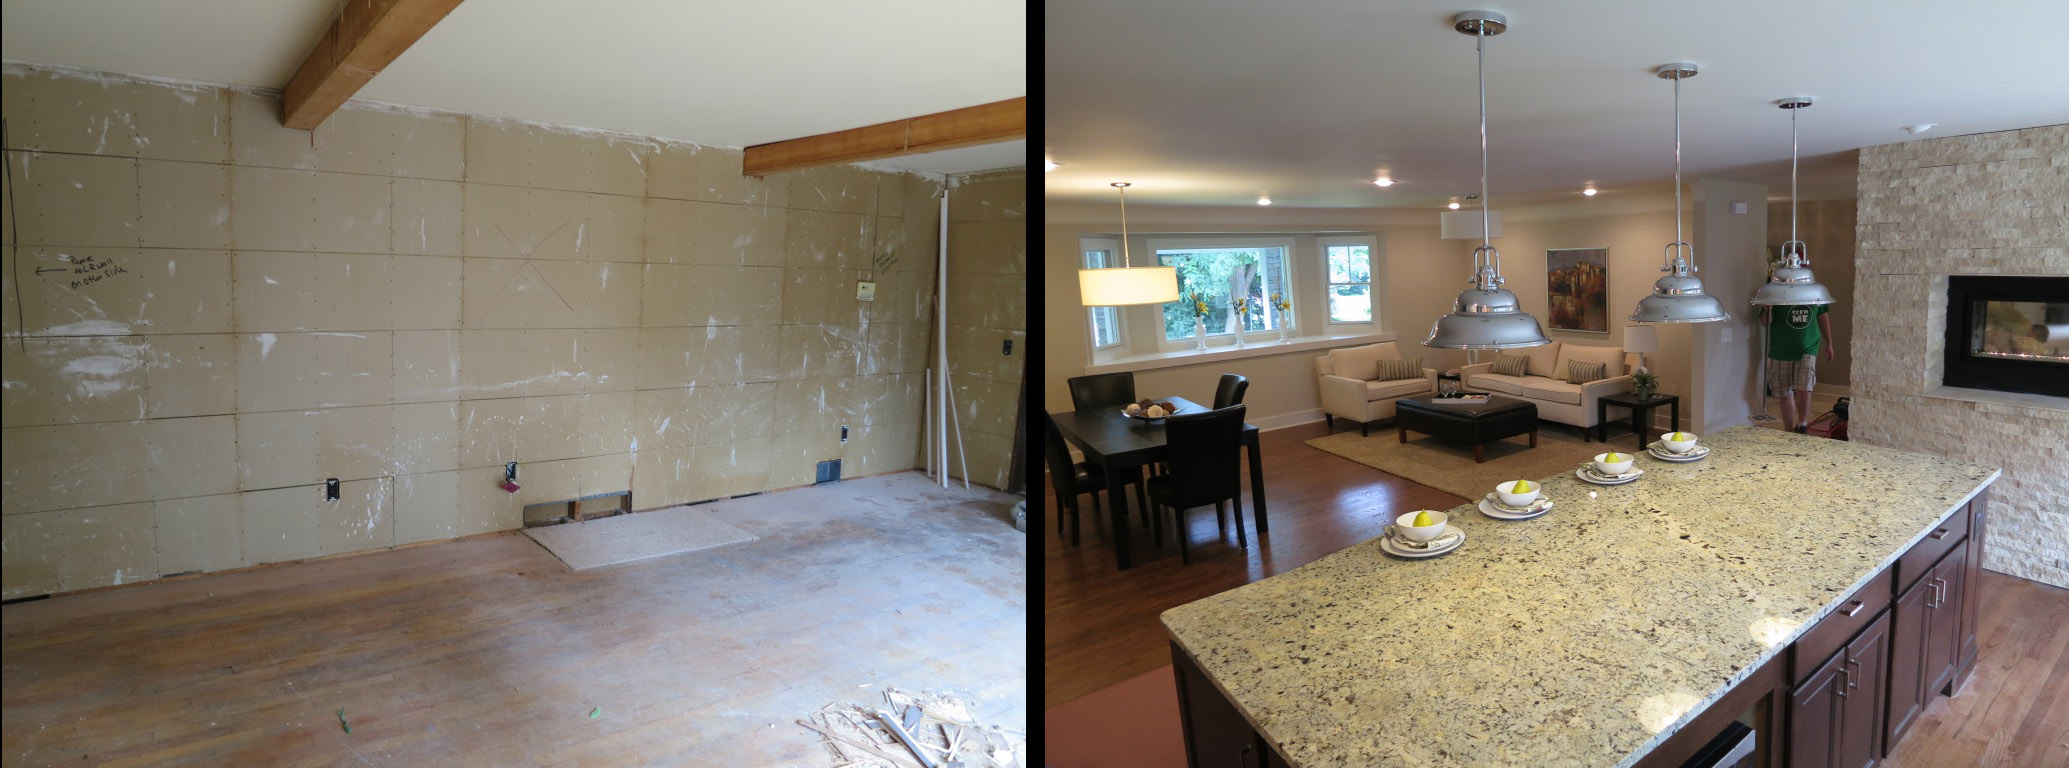 Birmingham Kitchen Before And After